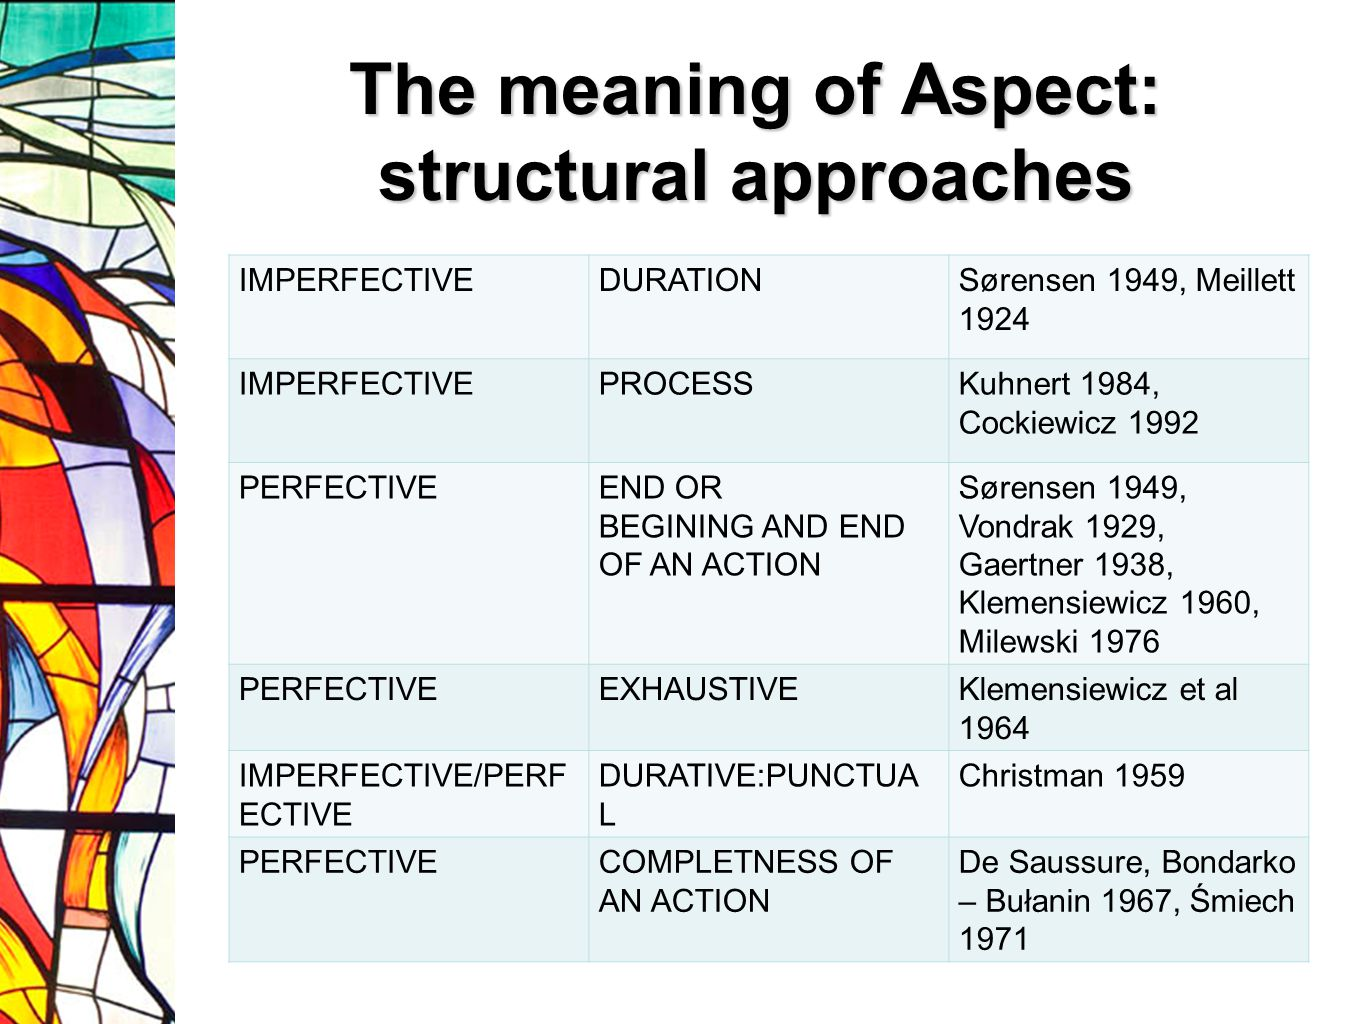 The meaning of Aspect: structural approaches IMPERFECTIVEDURATIONSørensen 1949, Meillett 1924 IMPERFECTIVEPROCESSKuhnert 1984, Cockiewicz 1992 PERFECTIVEEND OR BEGINING AND END OF AN ACTION Sørensen 1949, Vondrak 1929, Gaertner 1938, Klemensiewicz 1960, Milewski 1976 PERFECTIVEEXHAUSTIVEKlemensiewicz et al 1964 IMPERFECTIVE/PERF ECTIVE DURATIVE:PUNCTUA L Christman 1959 PERFECTIVECOMPLETNESS OF AN ACTION De Saussure, Bondarko – Bułanin 1967, Śmiech 1971